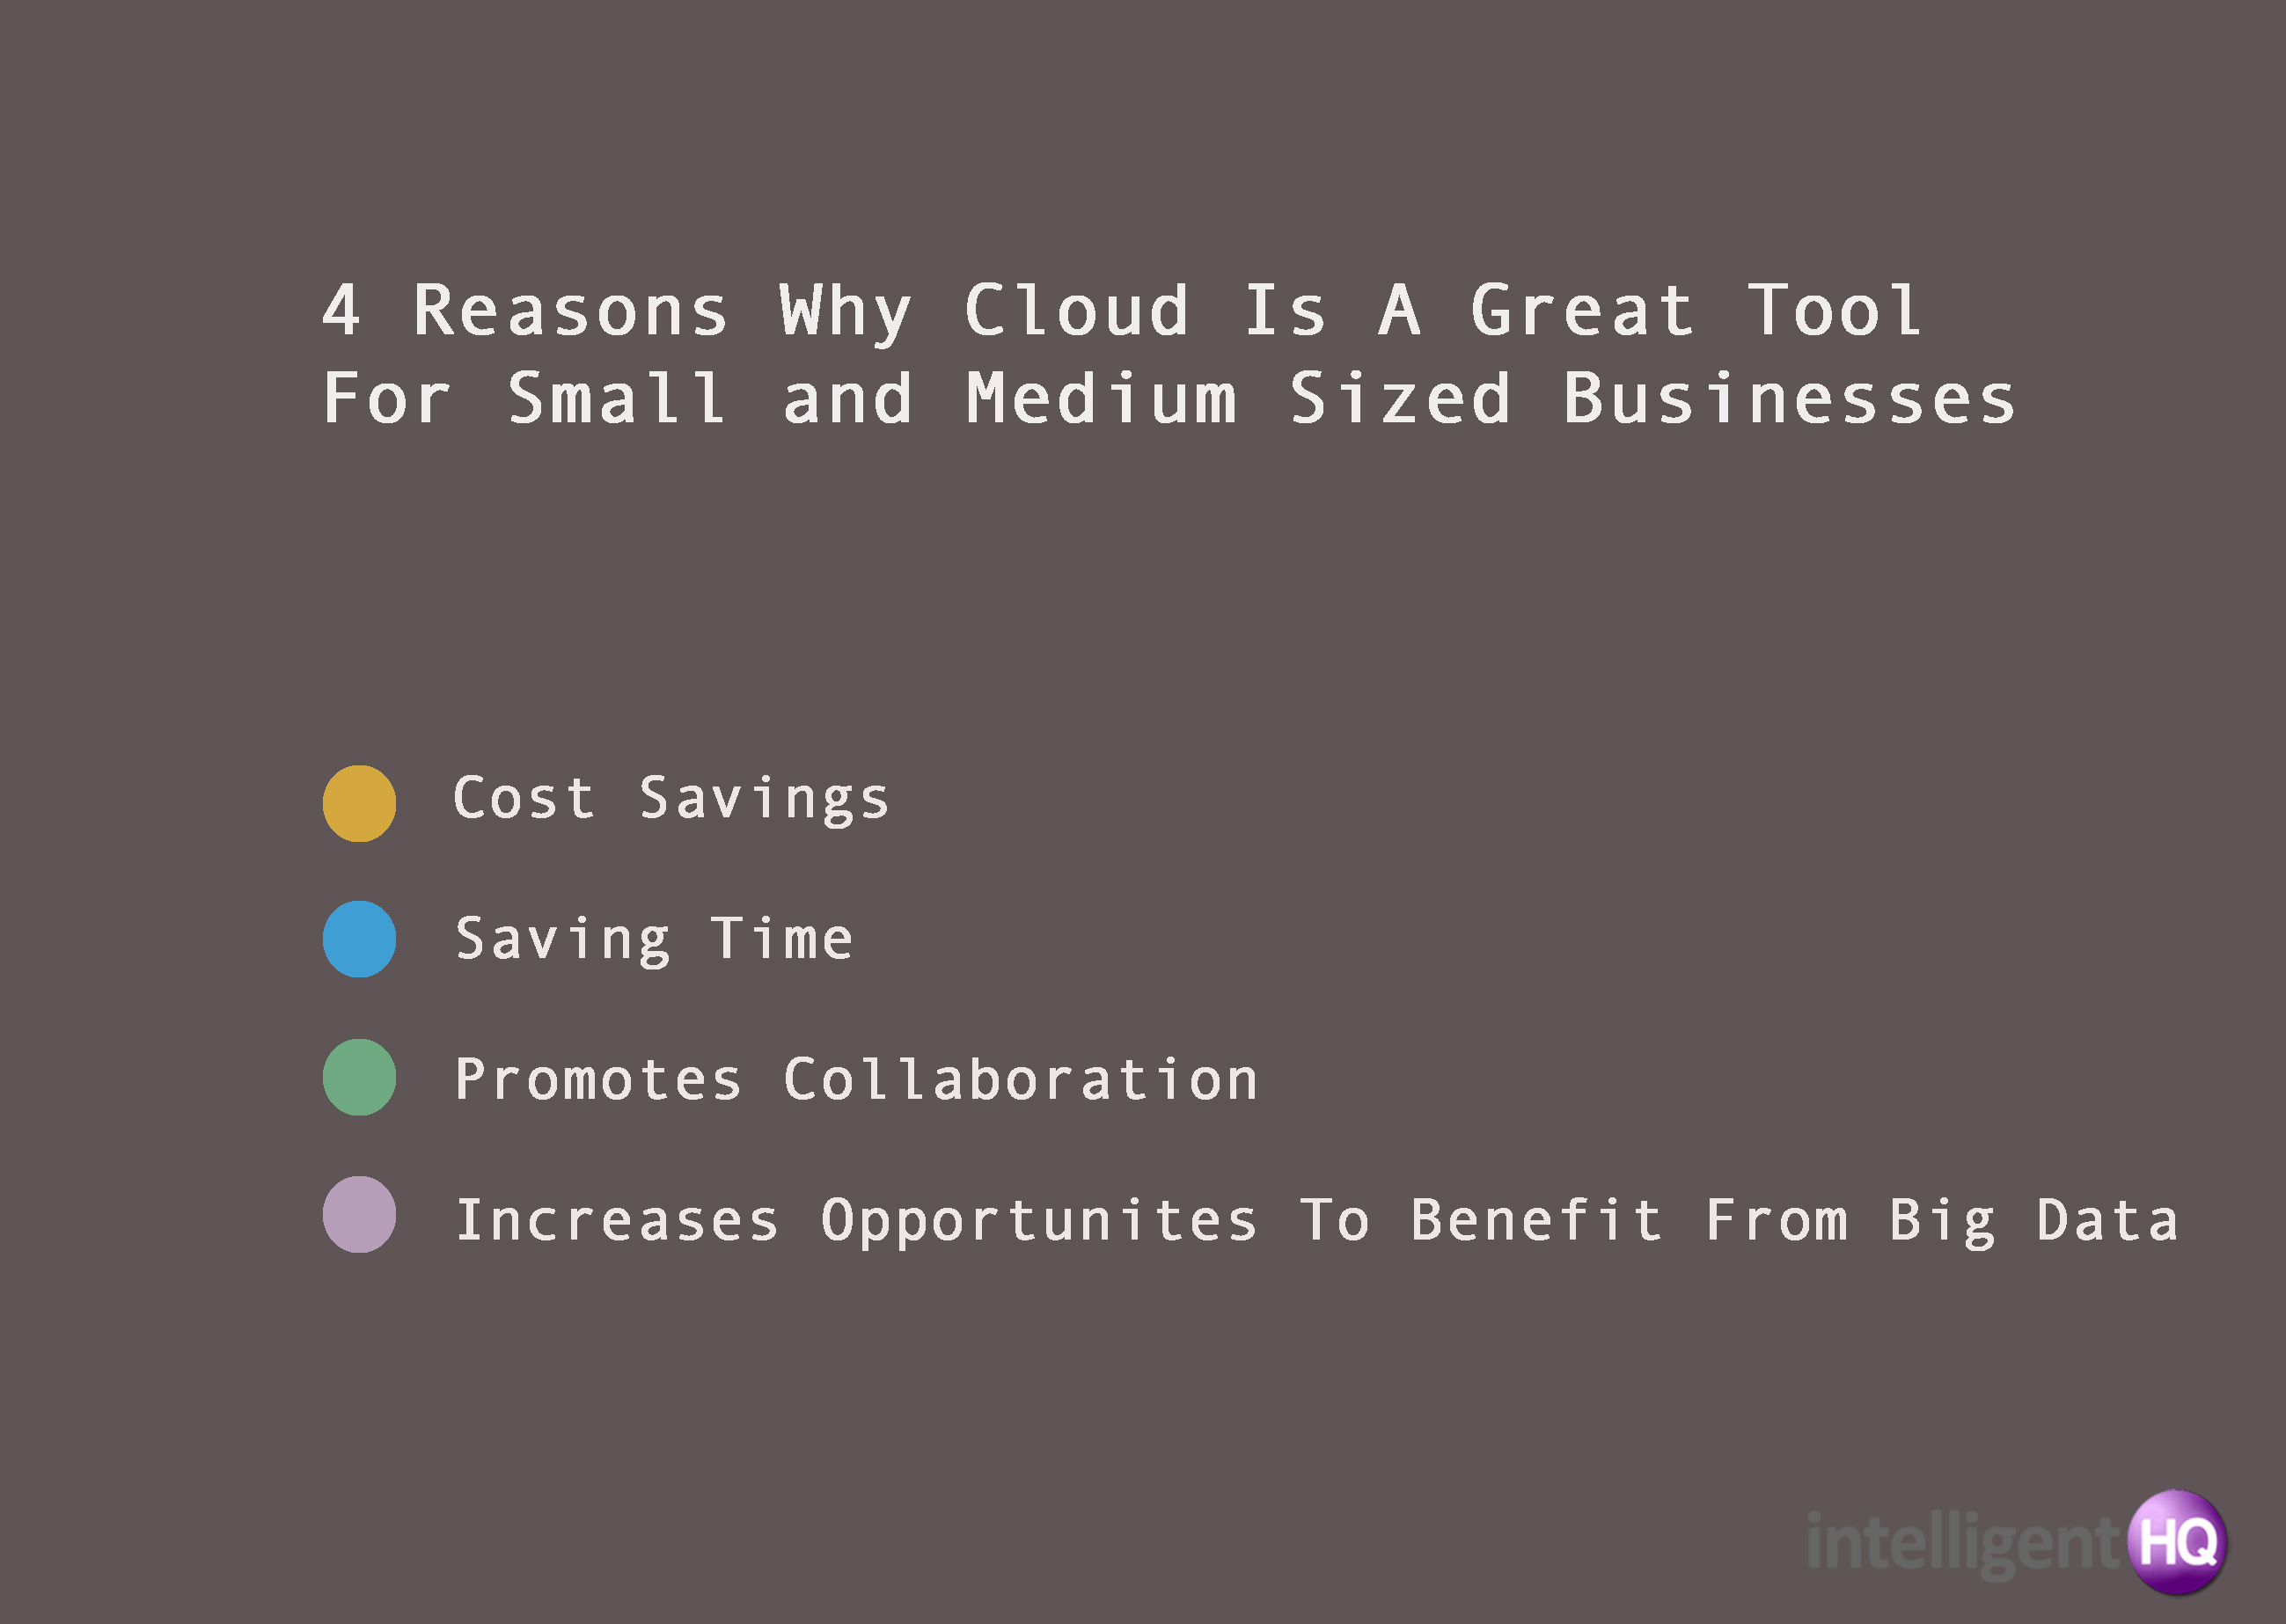 4 Reasons Why Cloud Is A Great Tool For Small and Medium Sized Businesses